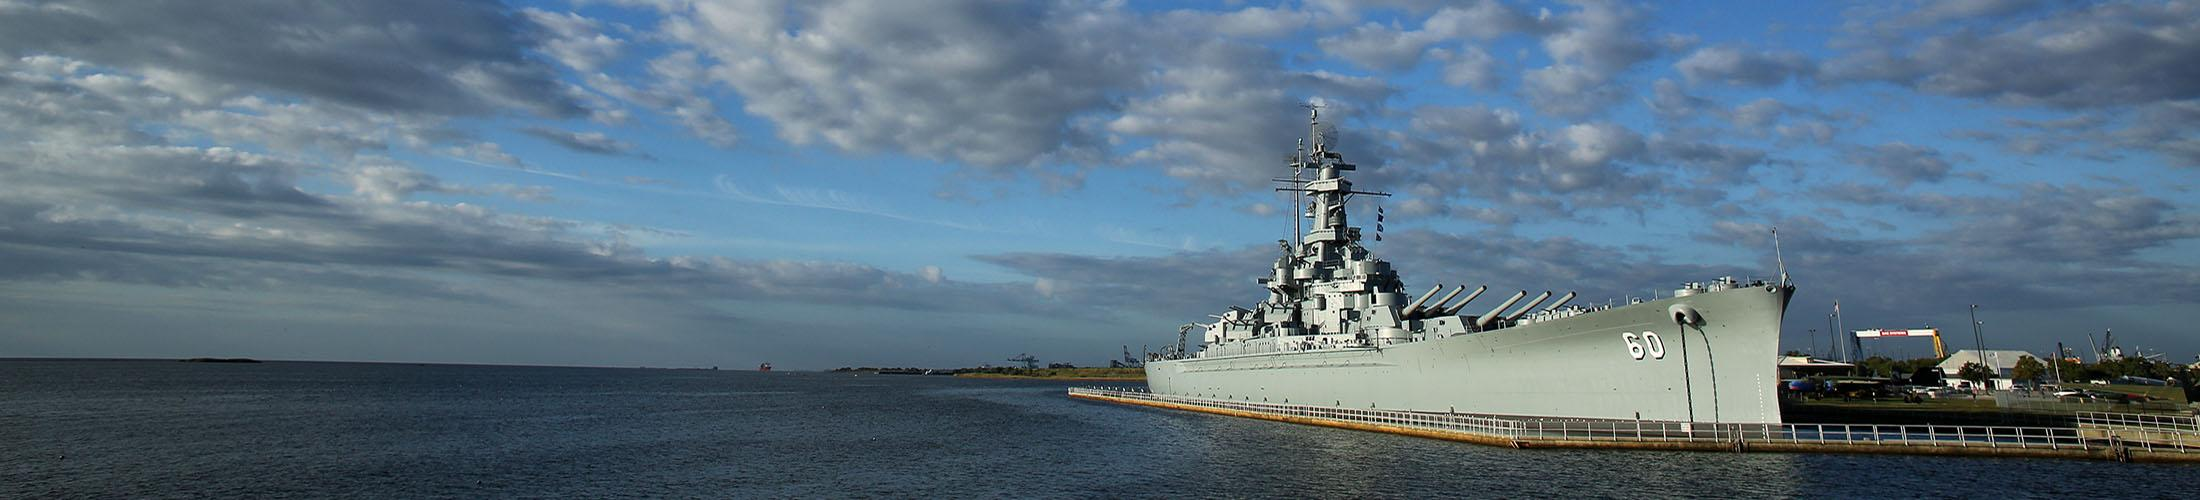 Battleship on the water